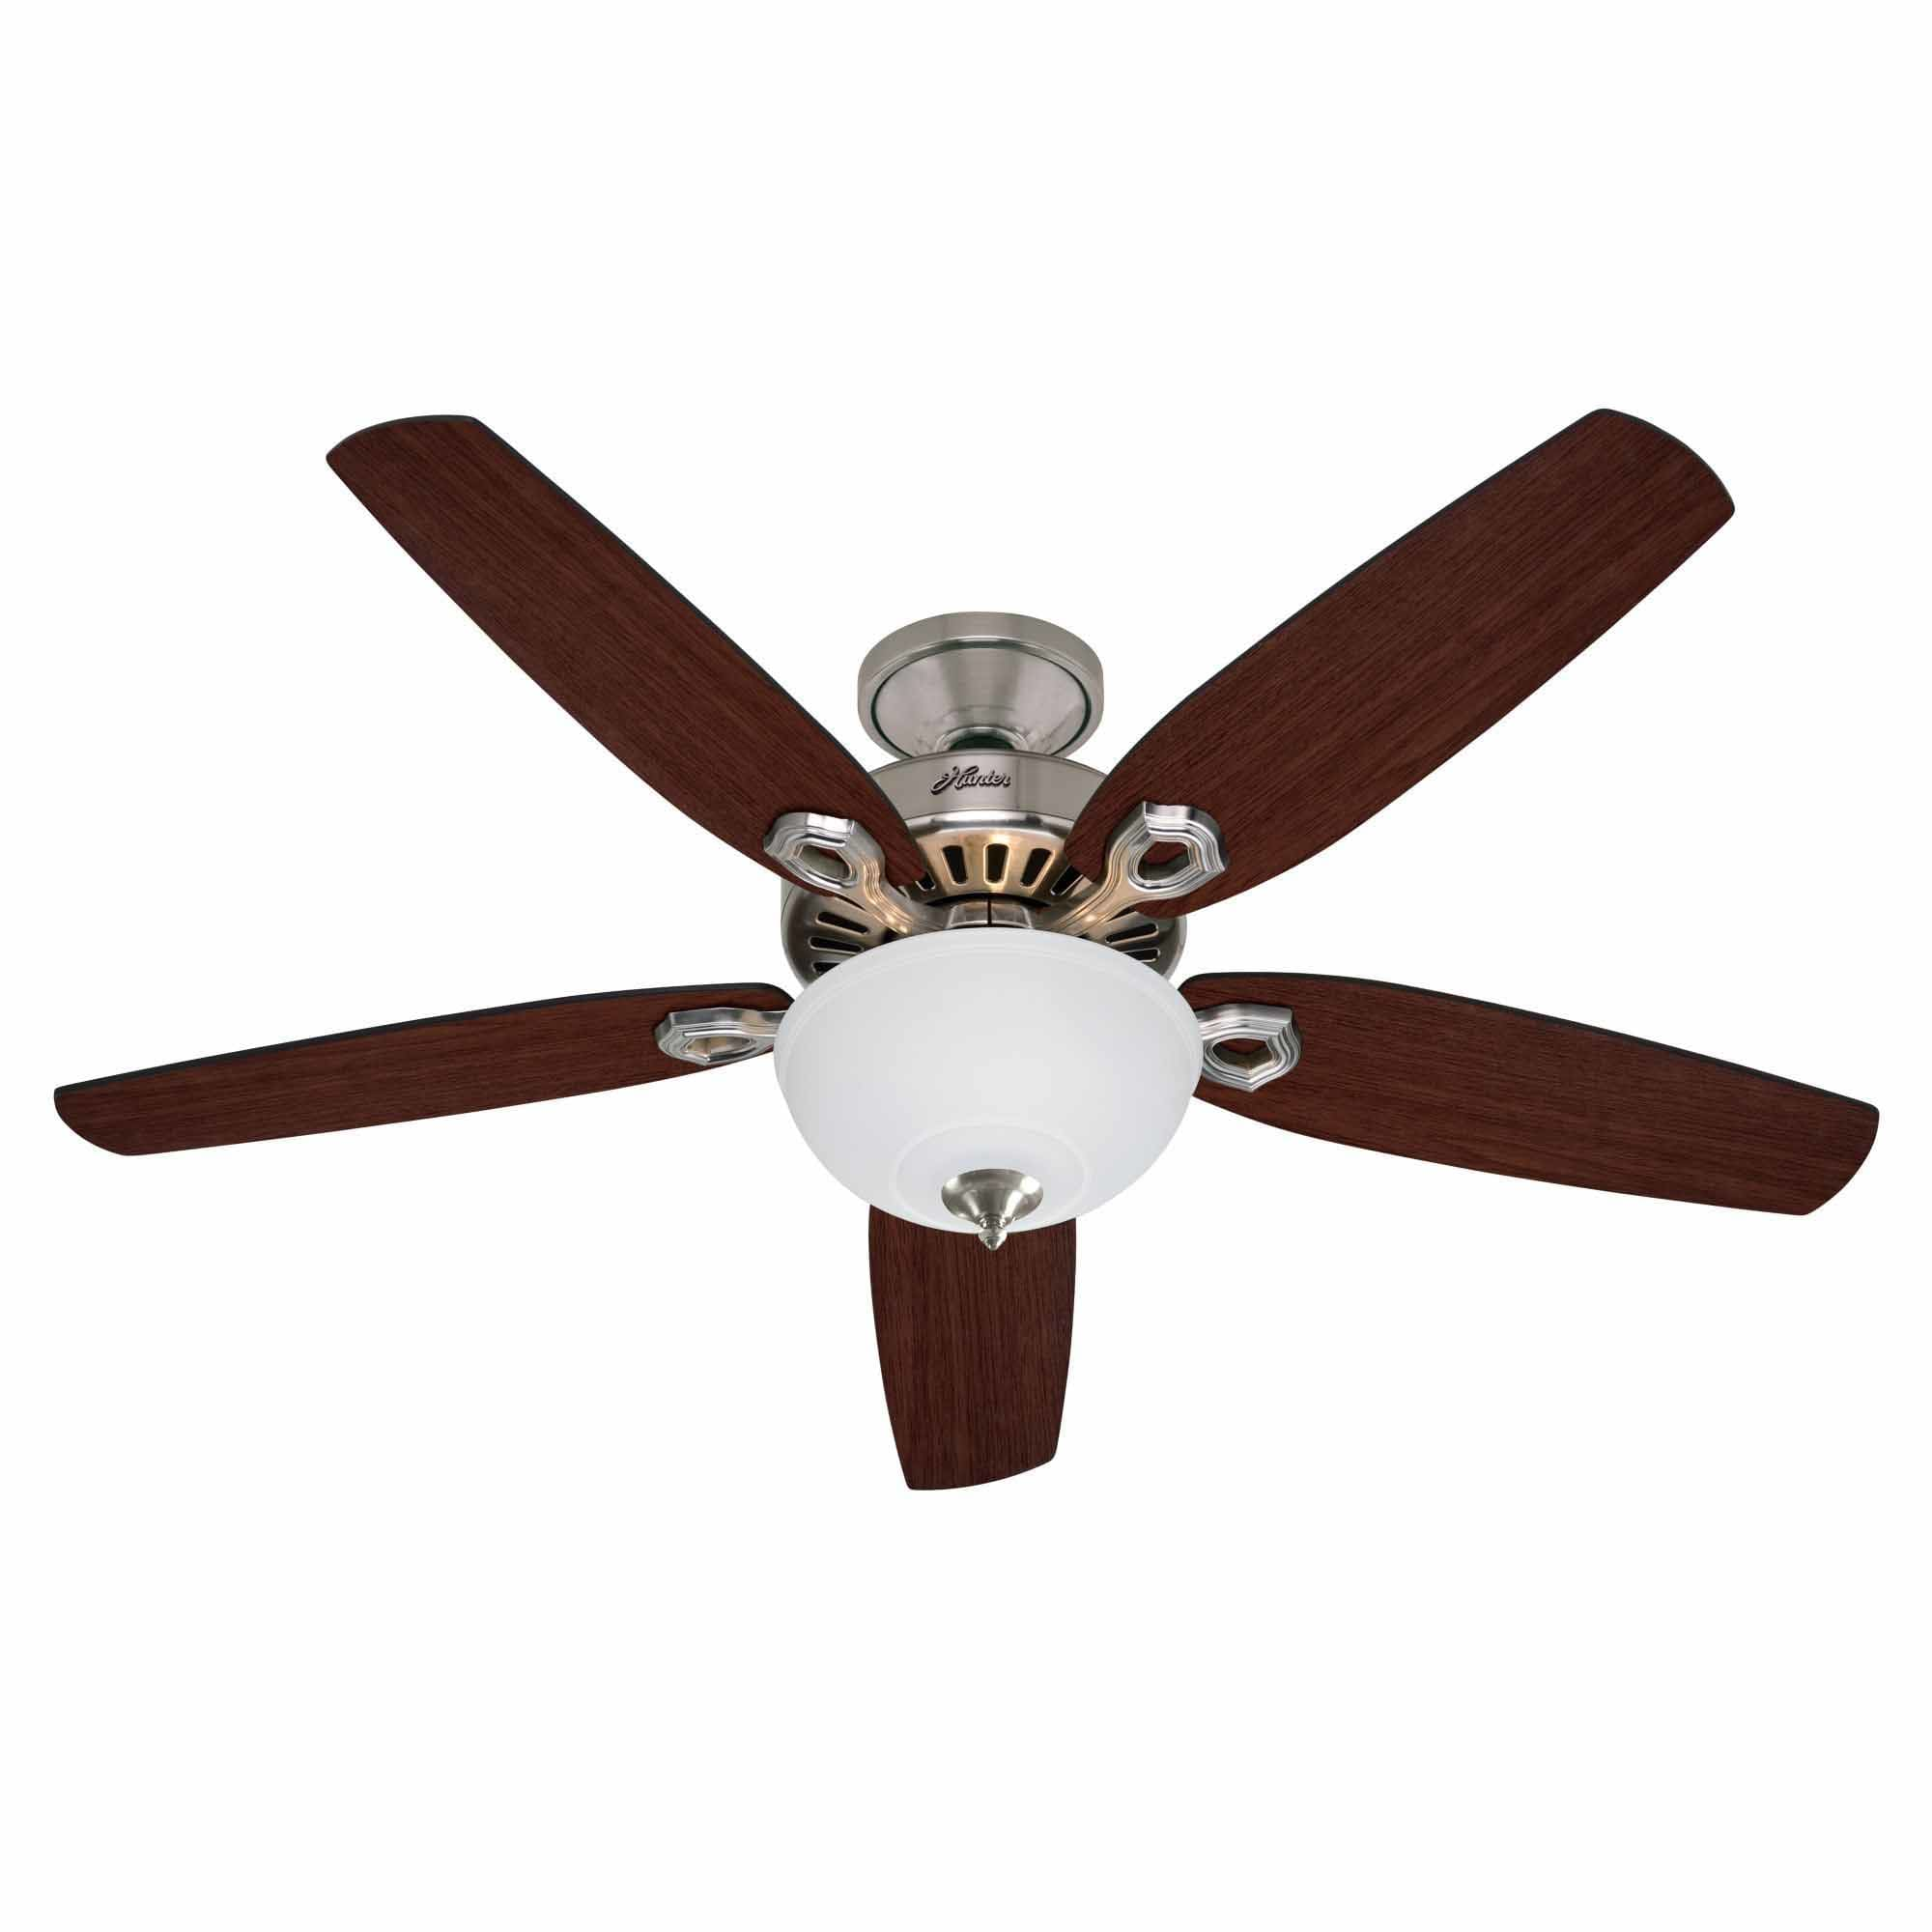 Shop Ceiling Fans LightingDirect Ceiling Fans with Lights